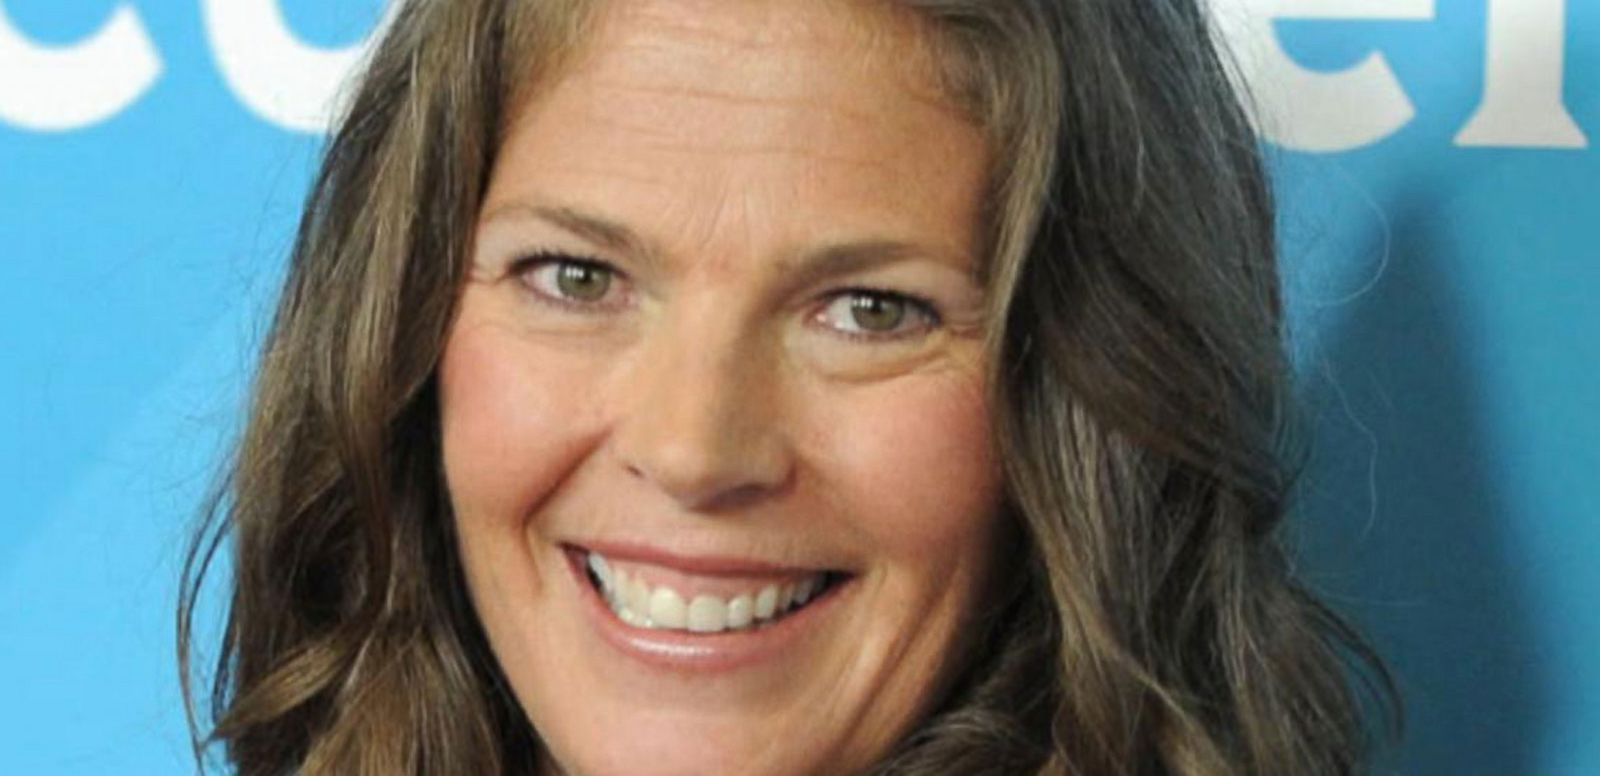 VIDEO: Olympic Skier Picabo Street Claims Self-Defense in Assault Case